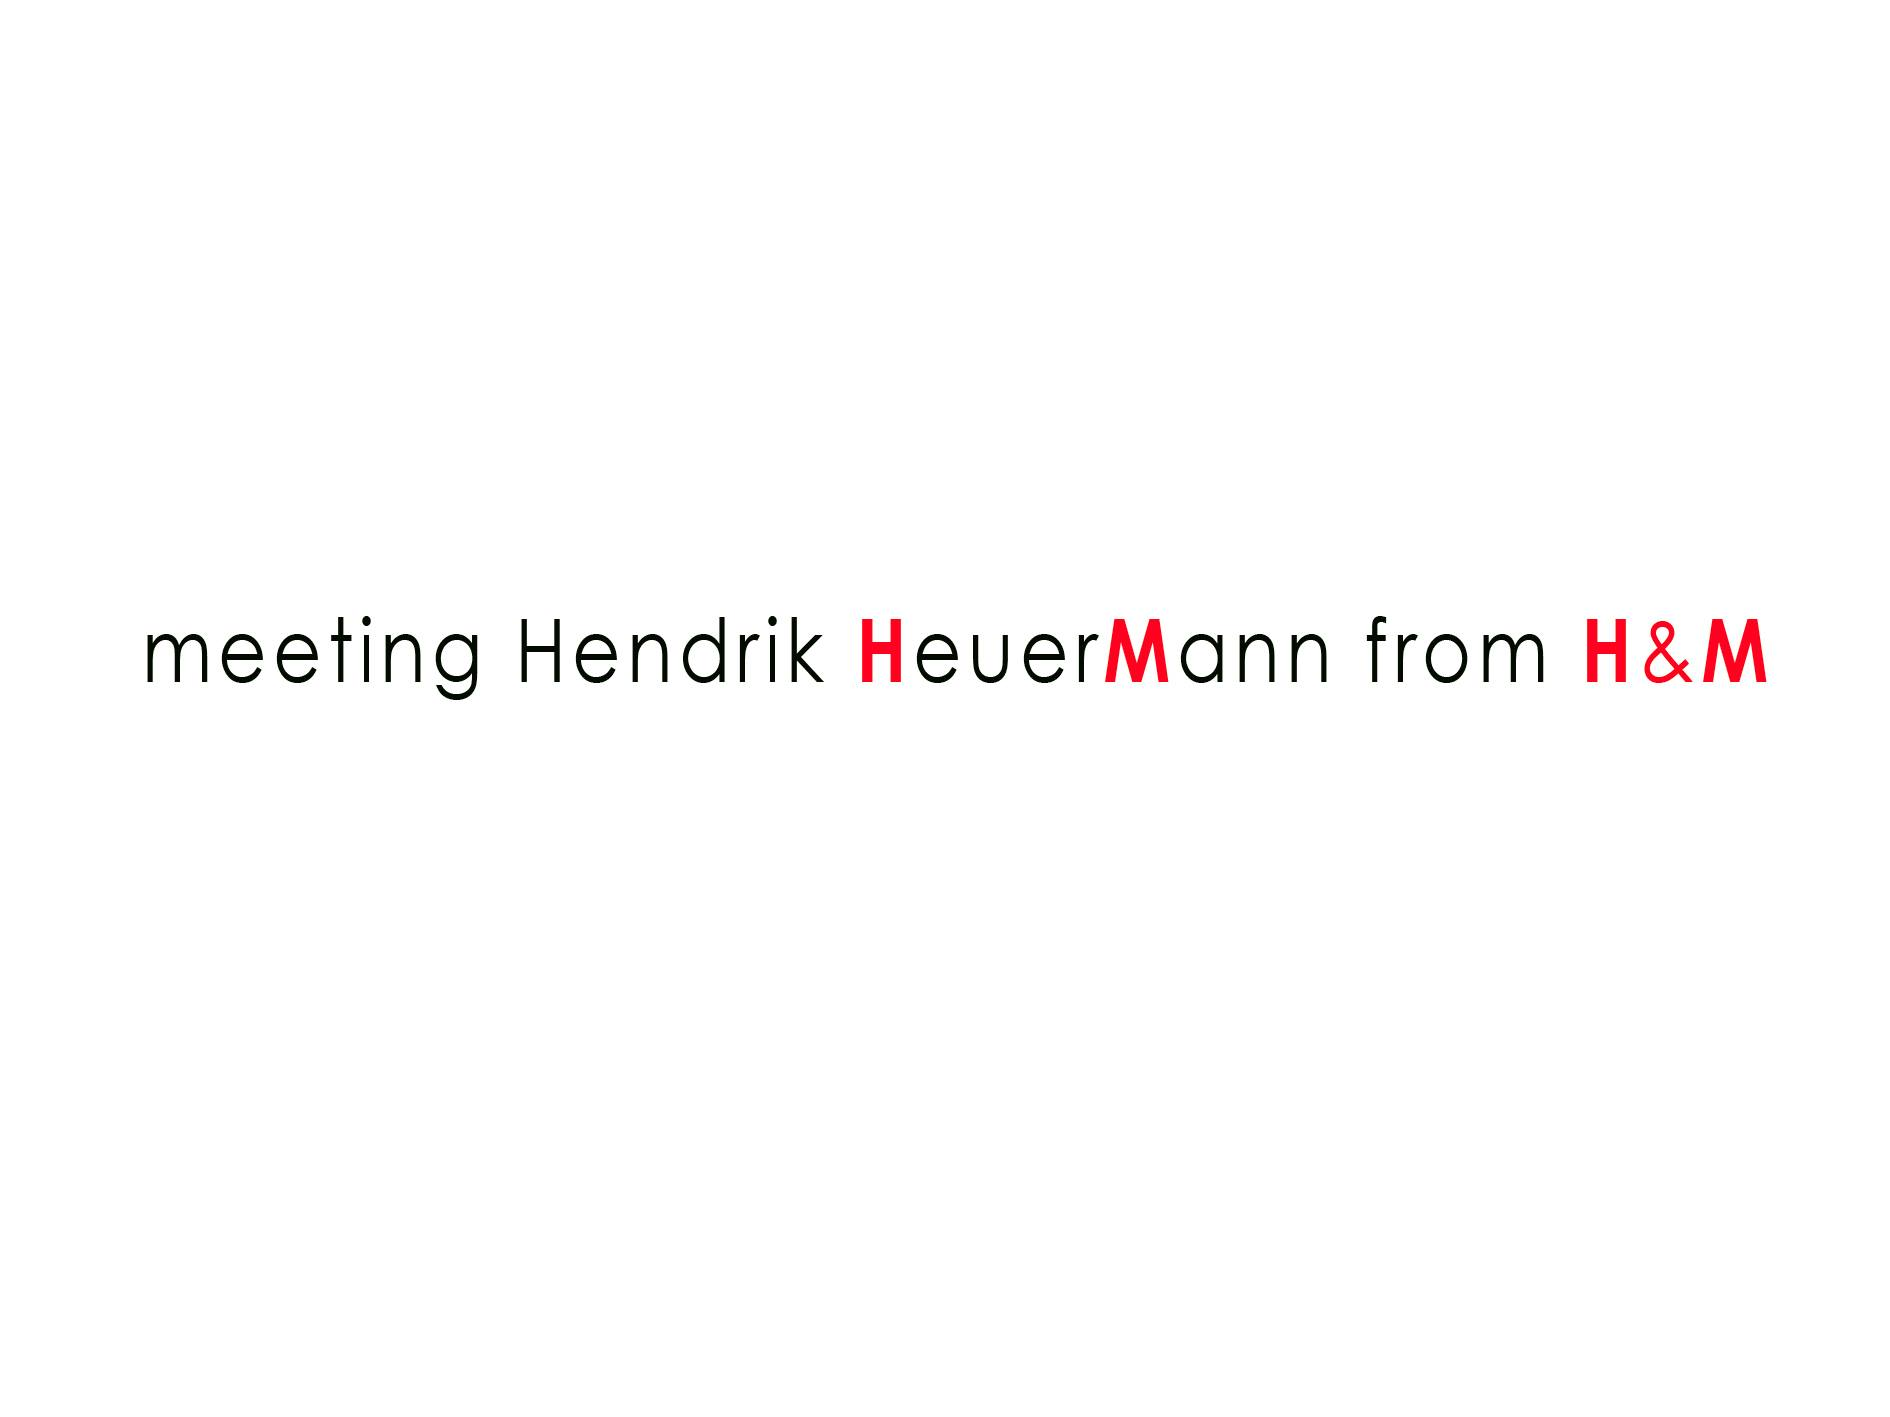 meeting Hendrik HeuerMann from H&M